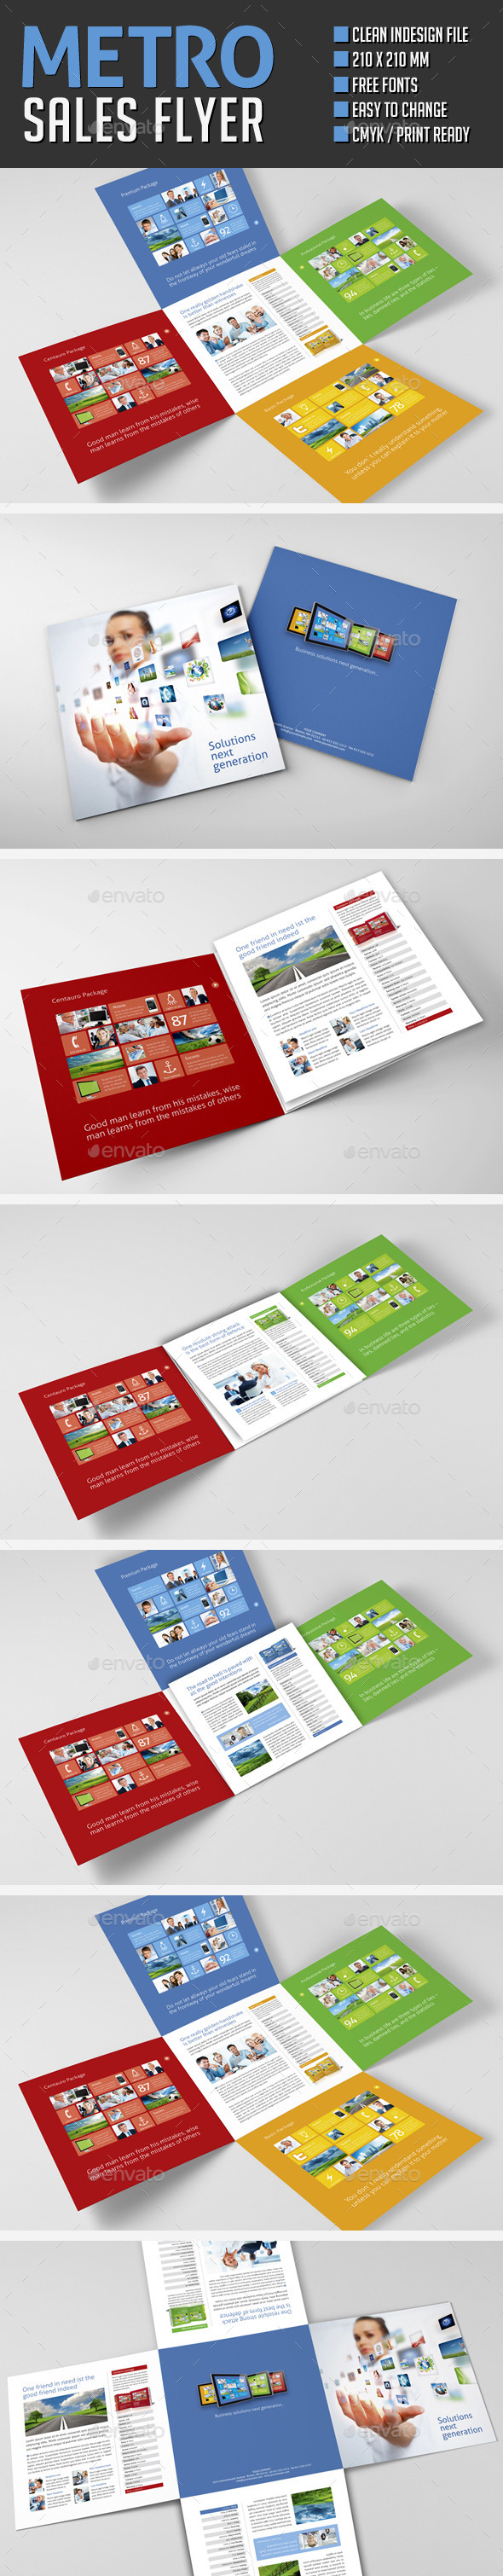 Metro Sales Folder - Corporate Flyers